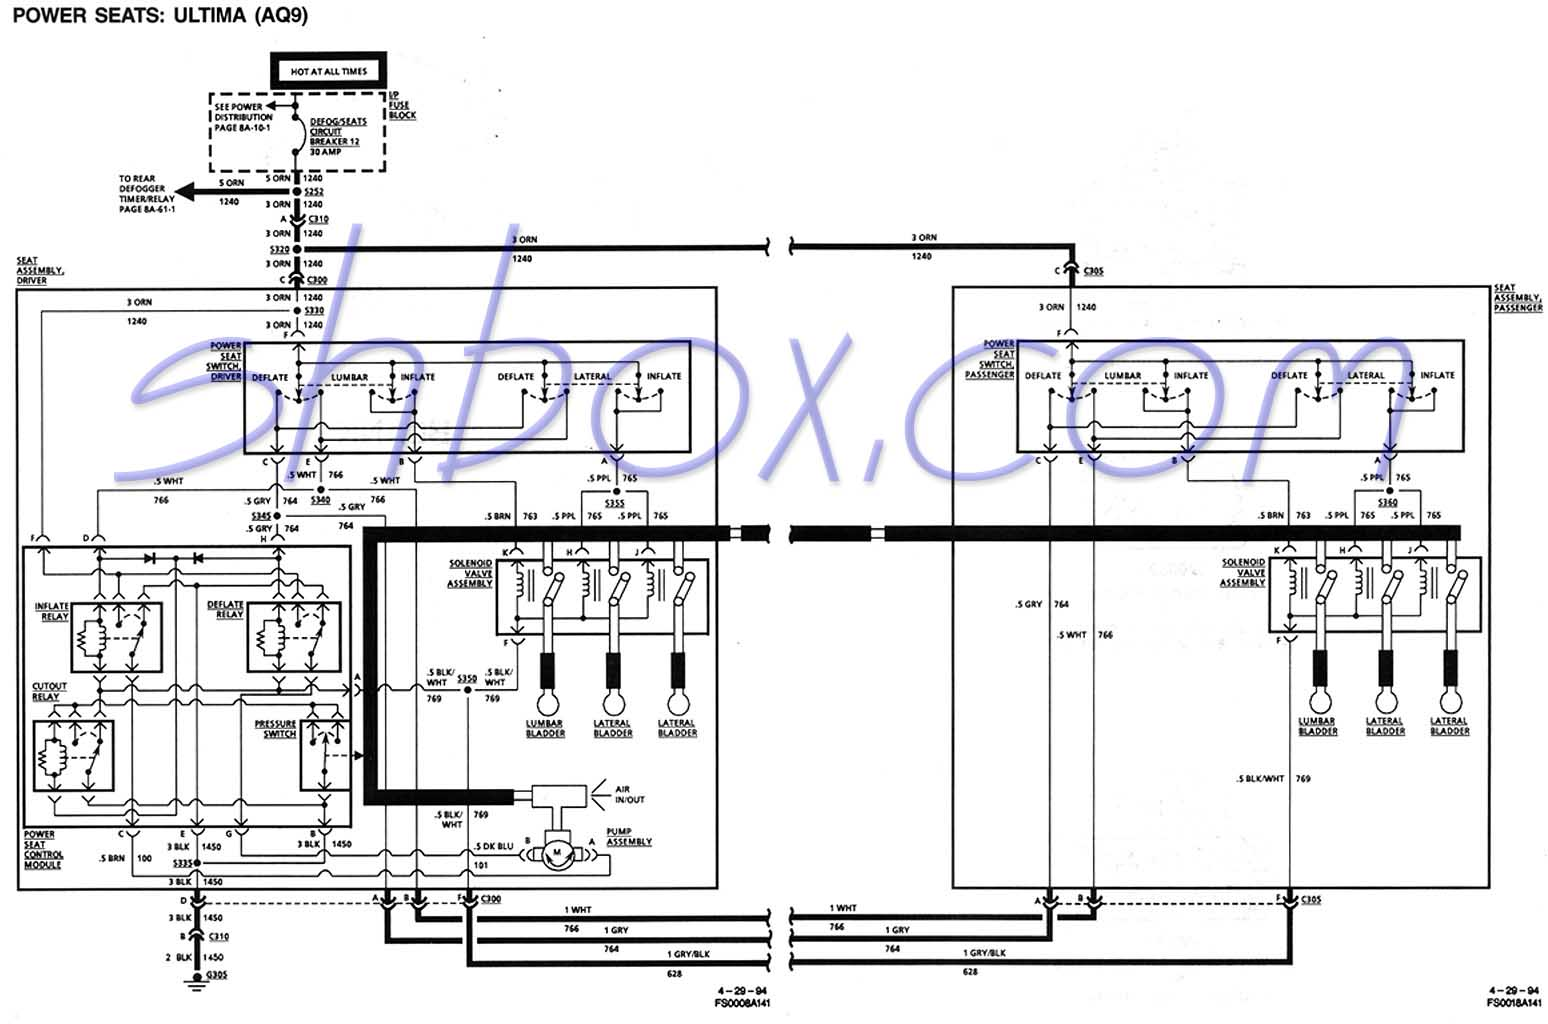 2010 Dodge 1500 Rear Abs Diagram, 2010, Free Engine Image